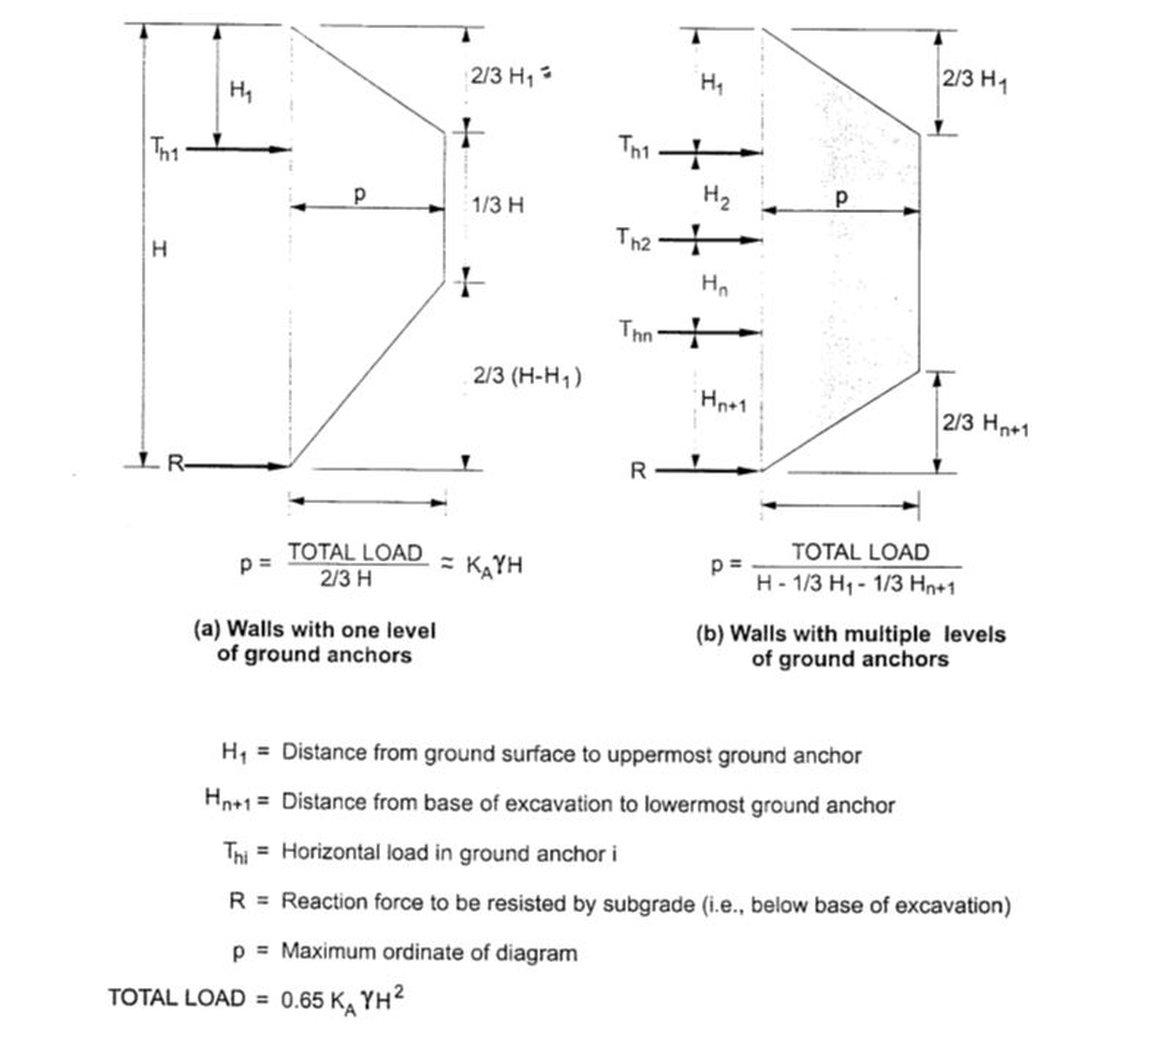 Active and passive coefficients of lateral earth pressures - DeepEx